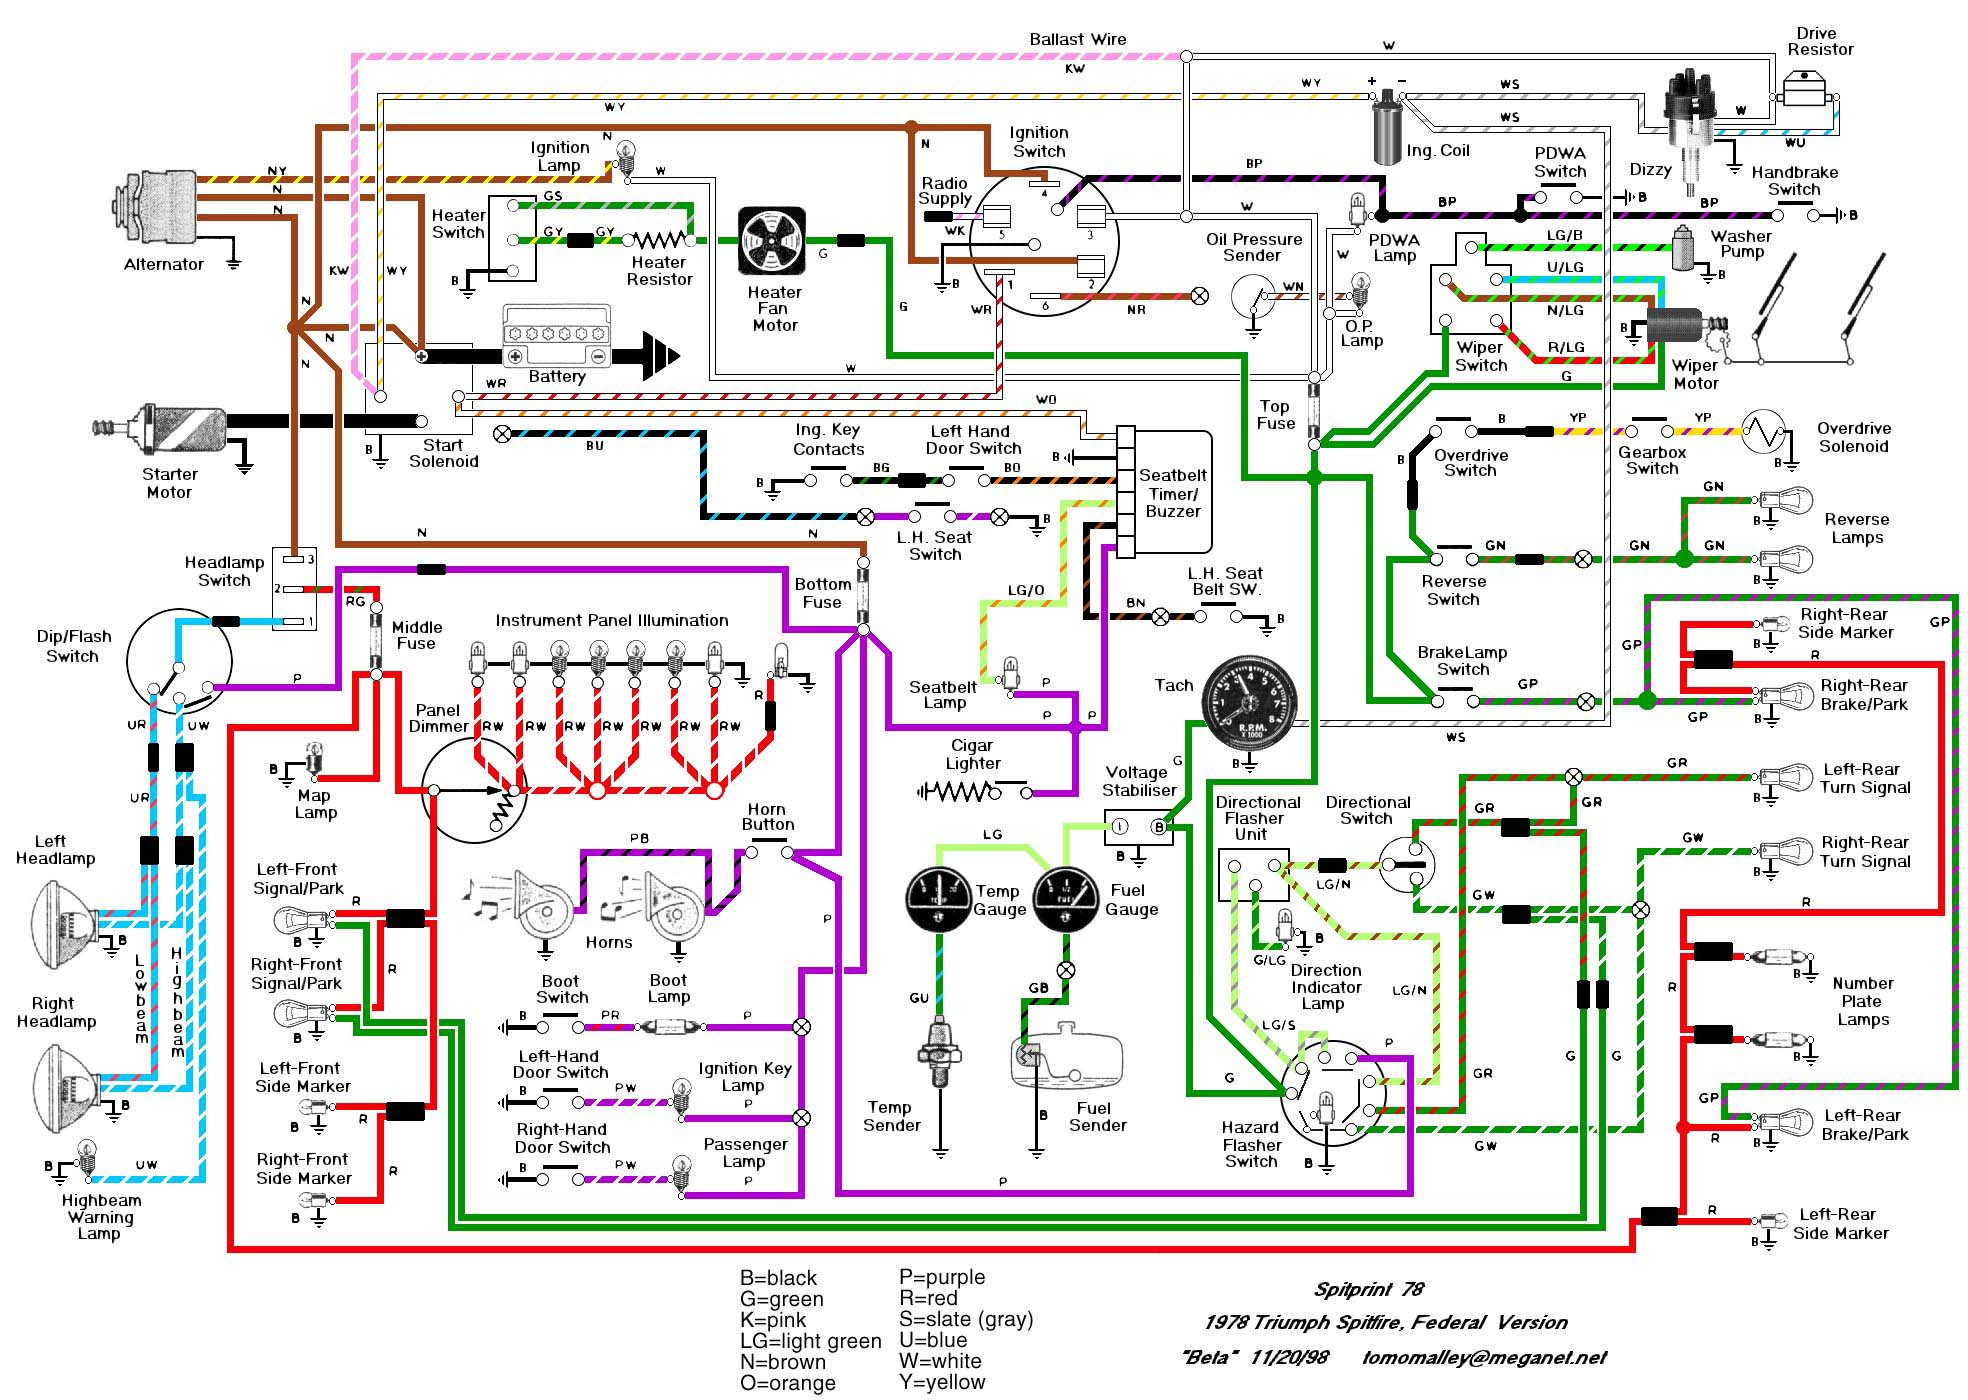 78diagram mk4 wiring diagram mk4 tdi wiring diagram \u2022 wiring diagrams j mk3 golf wiring diagram at gsmx.co